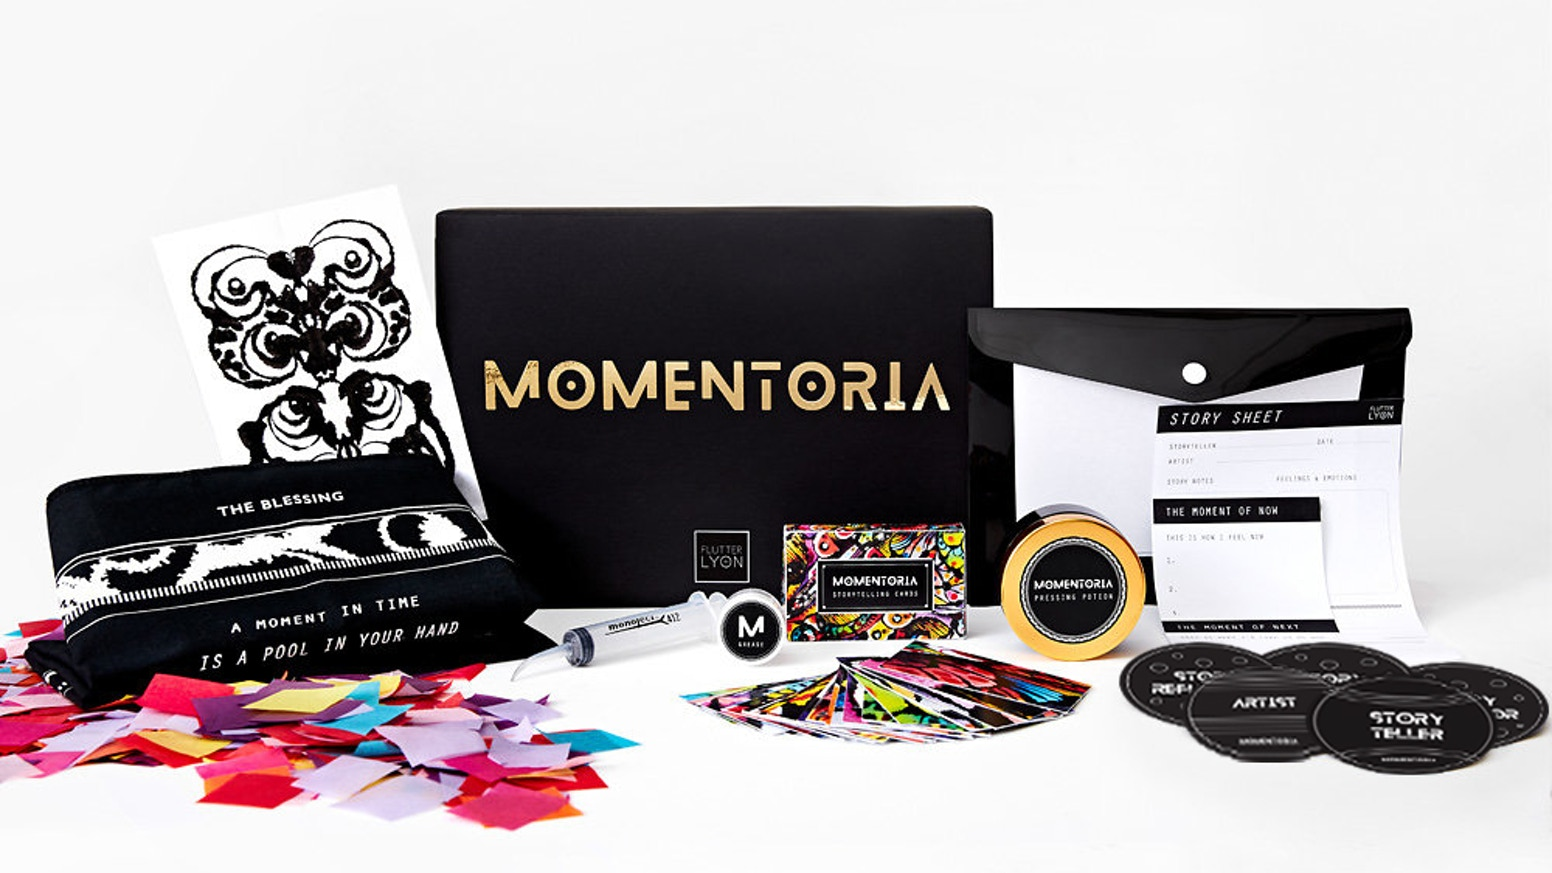 Momentoria : Stories of the People We Know by Flutter Lyon